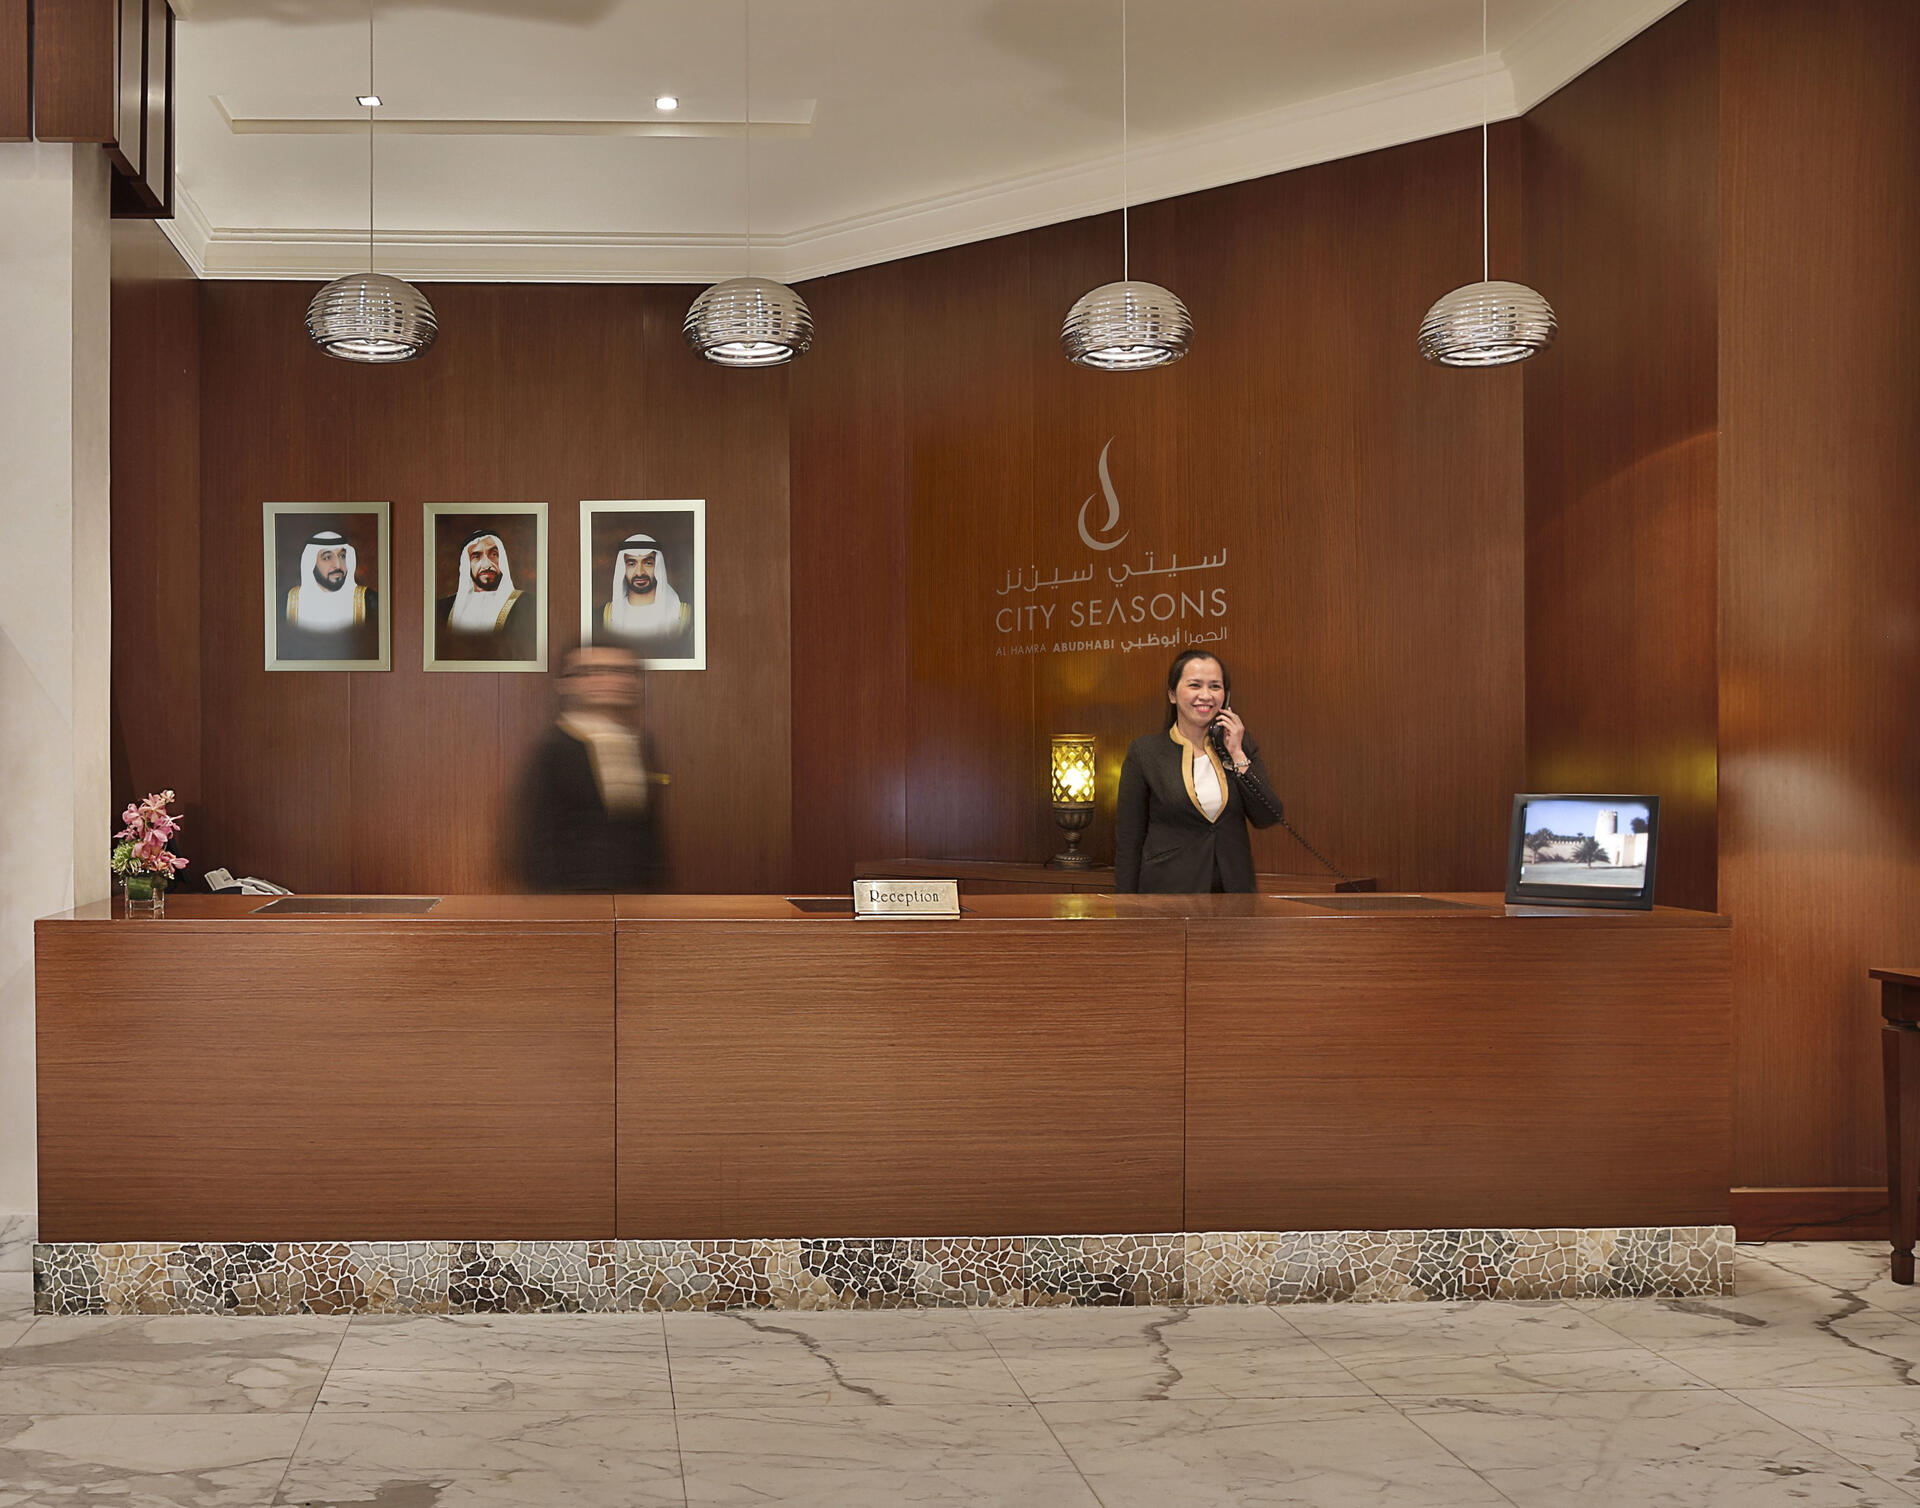 Reception of City Seasons Hotels